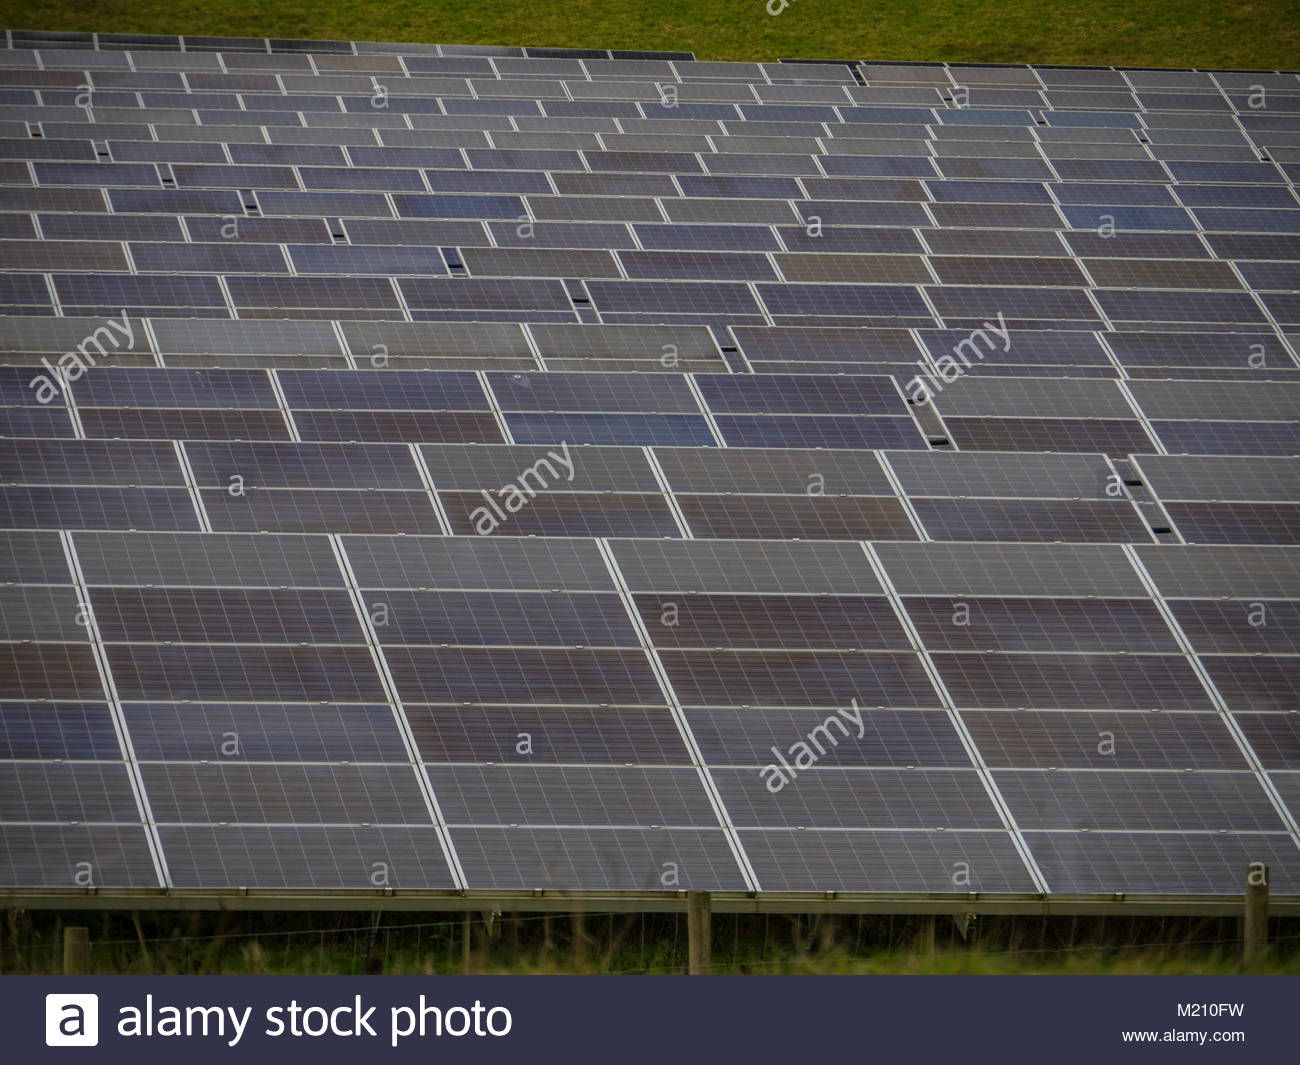 West Sussex Solar Panels in field - Stock Image